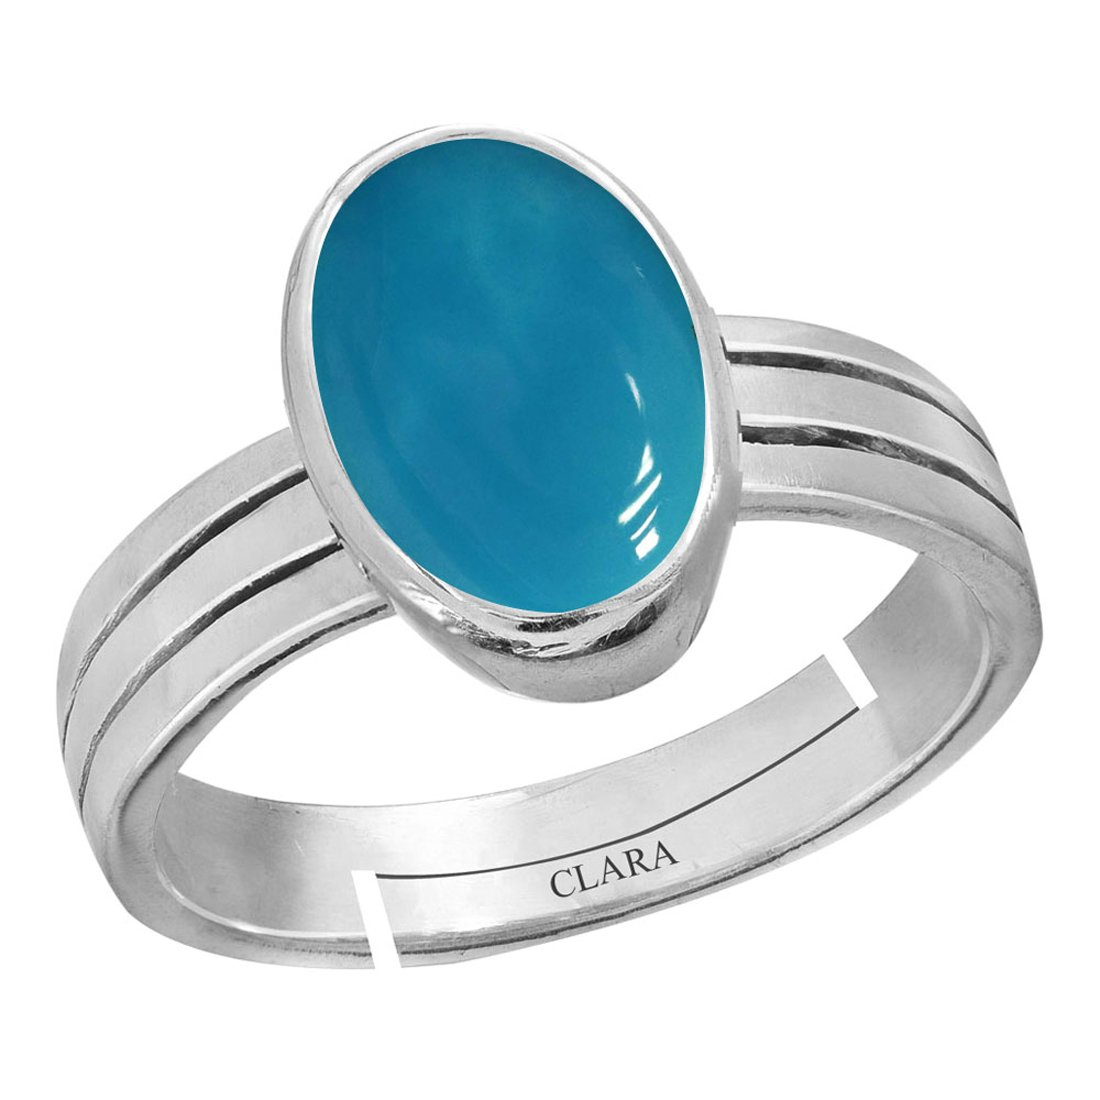 CLARA Certified Turquoise Firoza 5.5cts or 6.25ratti original stone Sterling Silver Astrological Ring for Men and Women